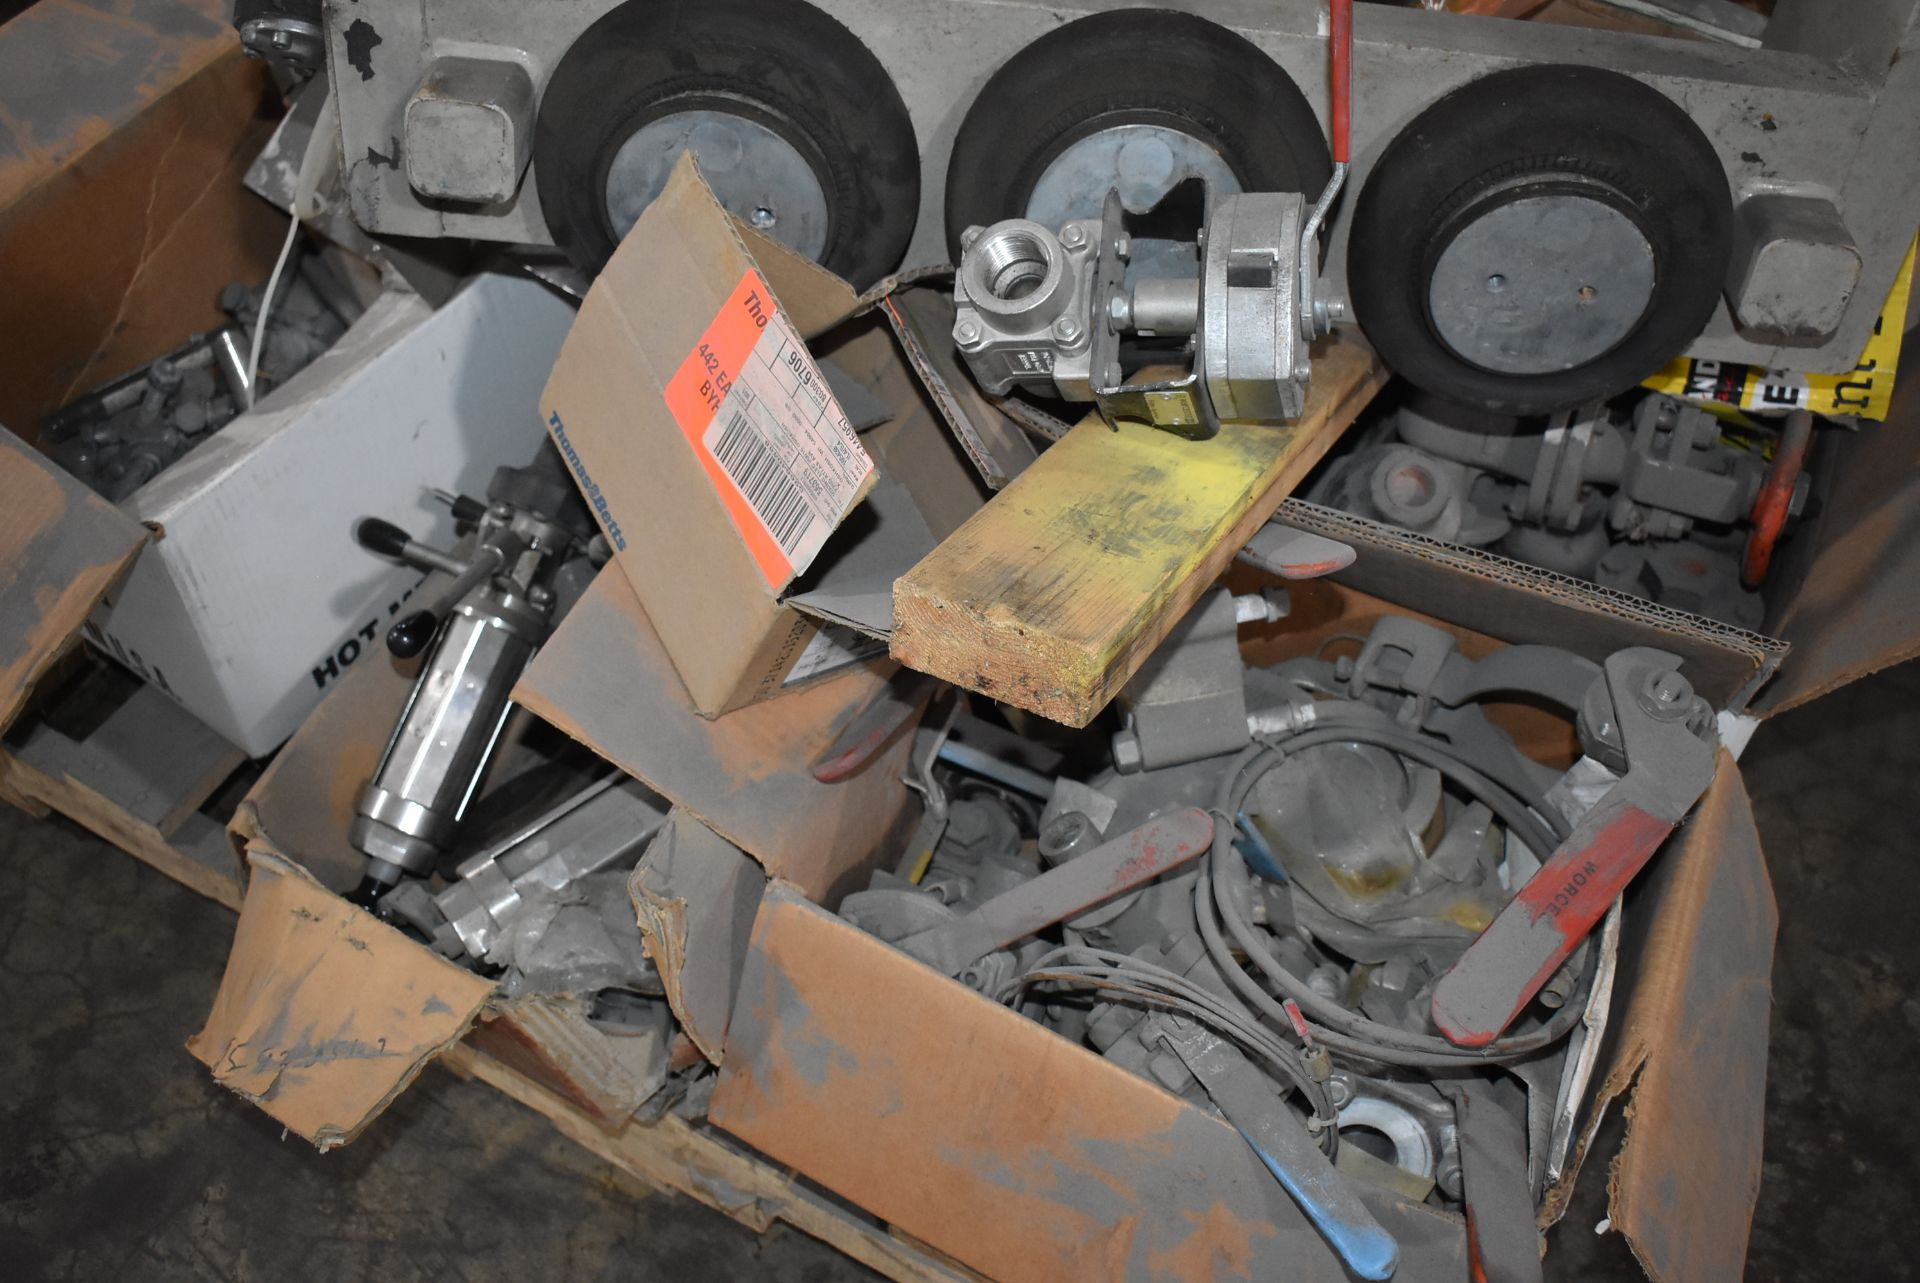 Plant Support - Budgit Hoist Trolley, Assorted Wire Wheels, Blower & Components - Image 3 of 3